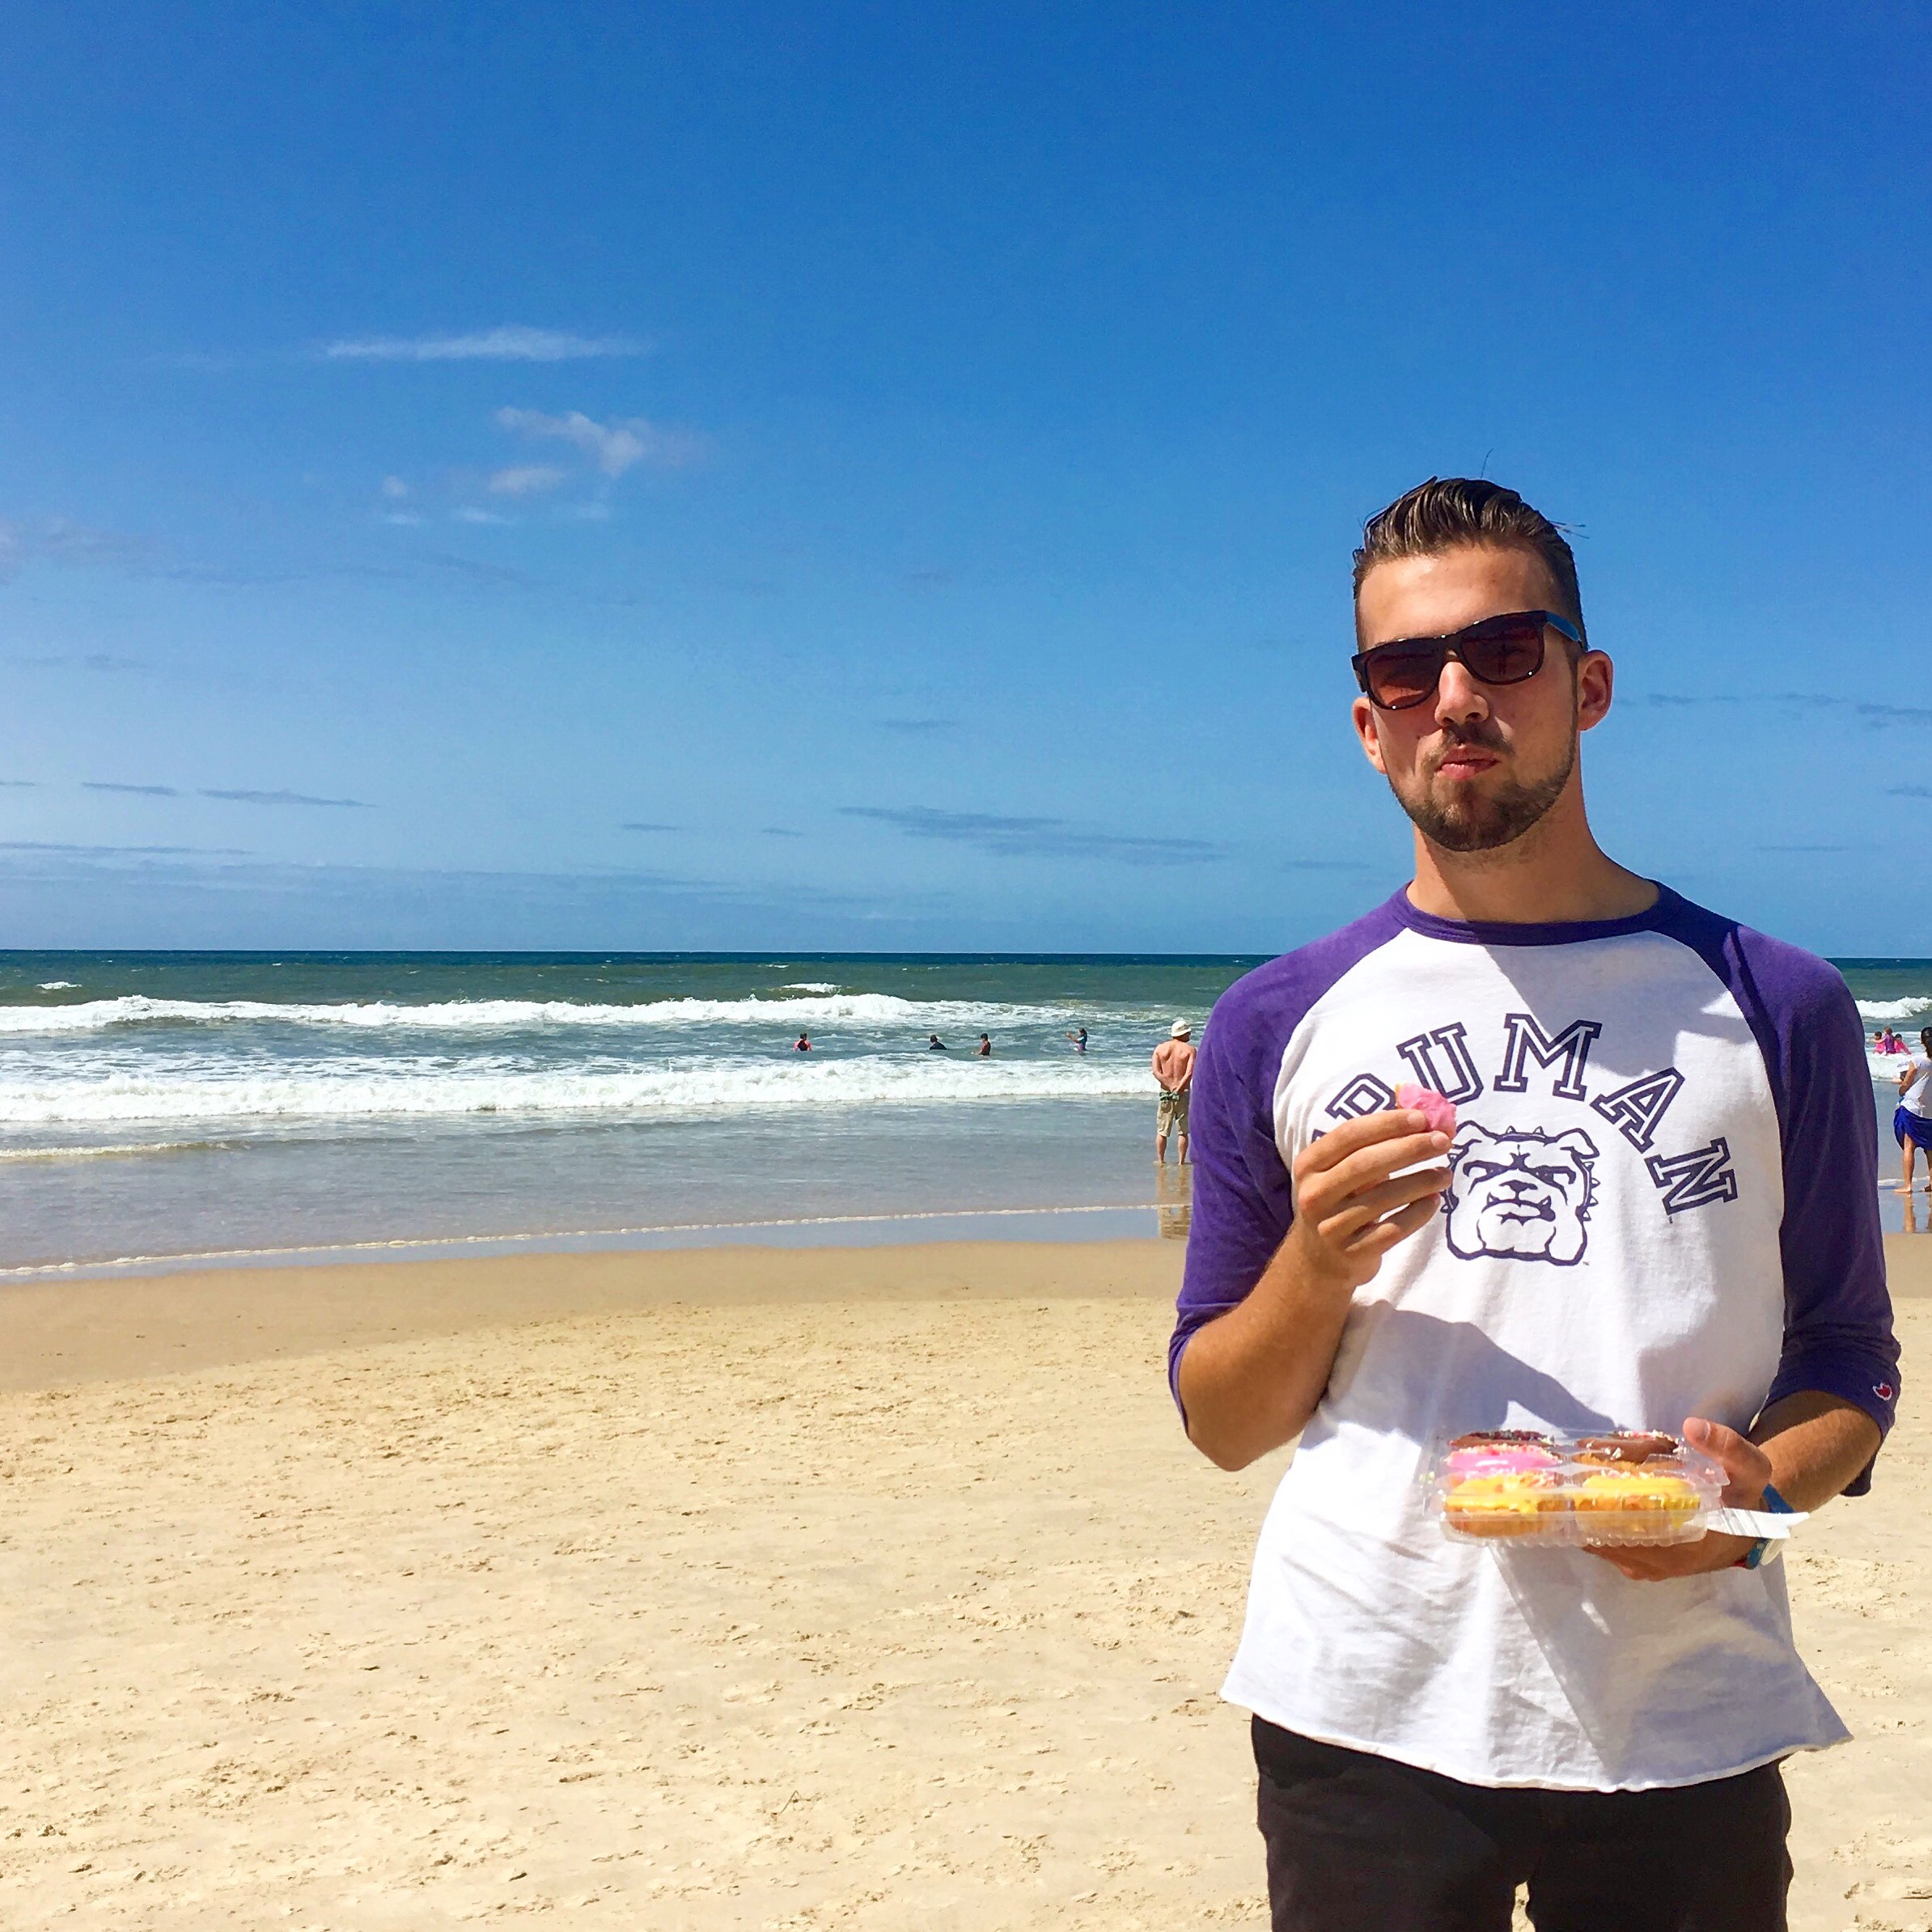 Truman student, Caleb Janssen, studying abroad in Australia